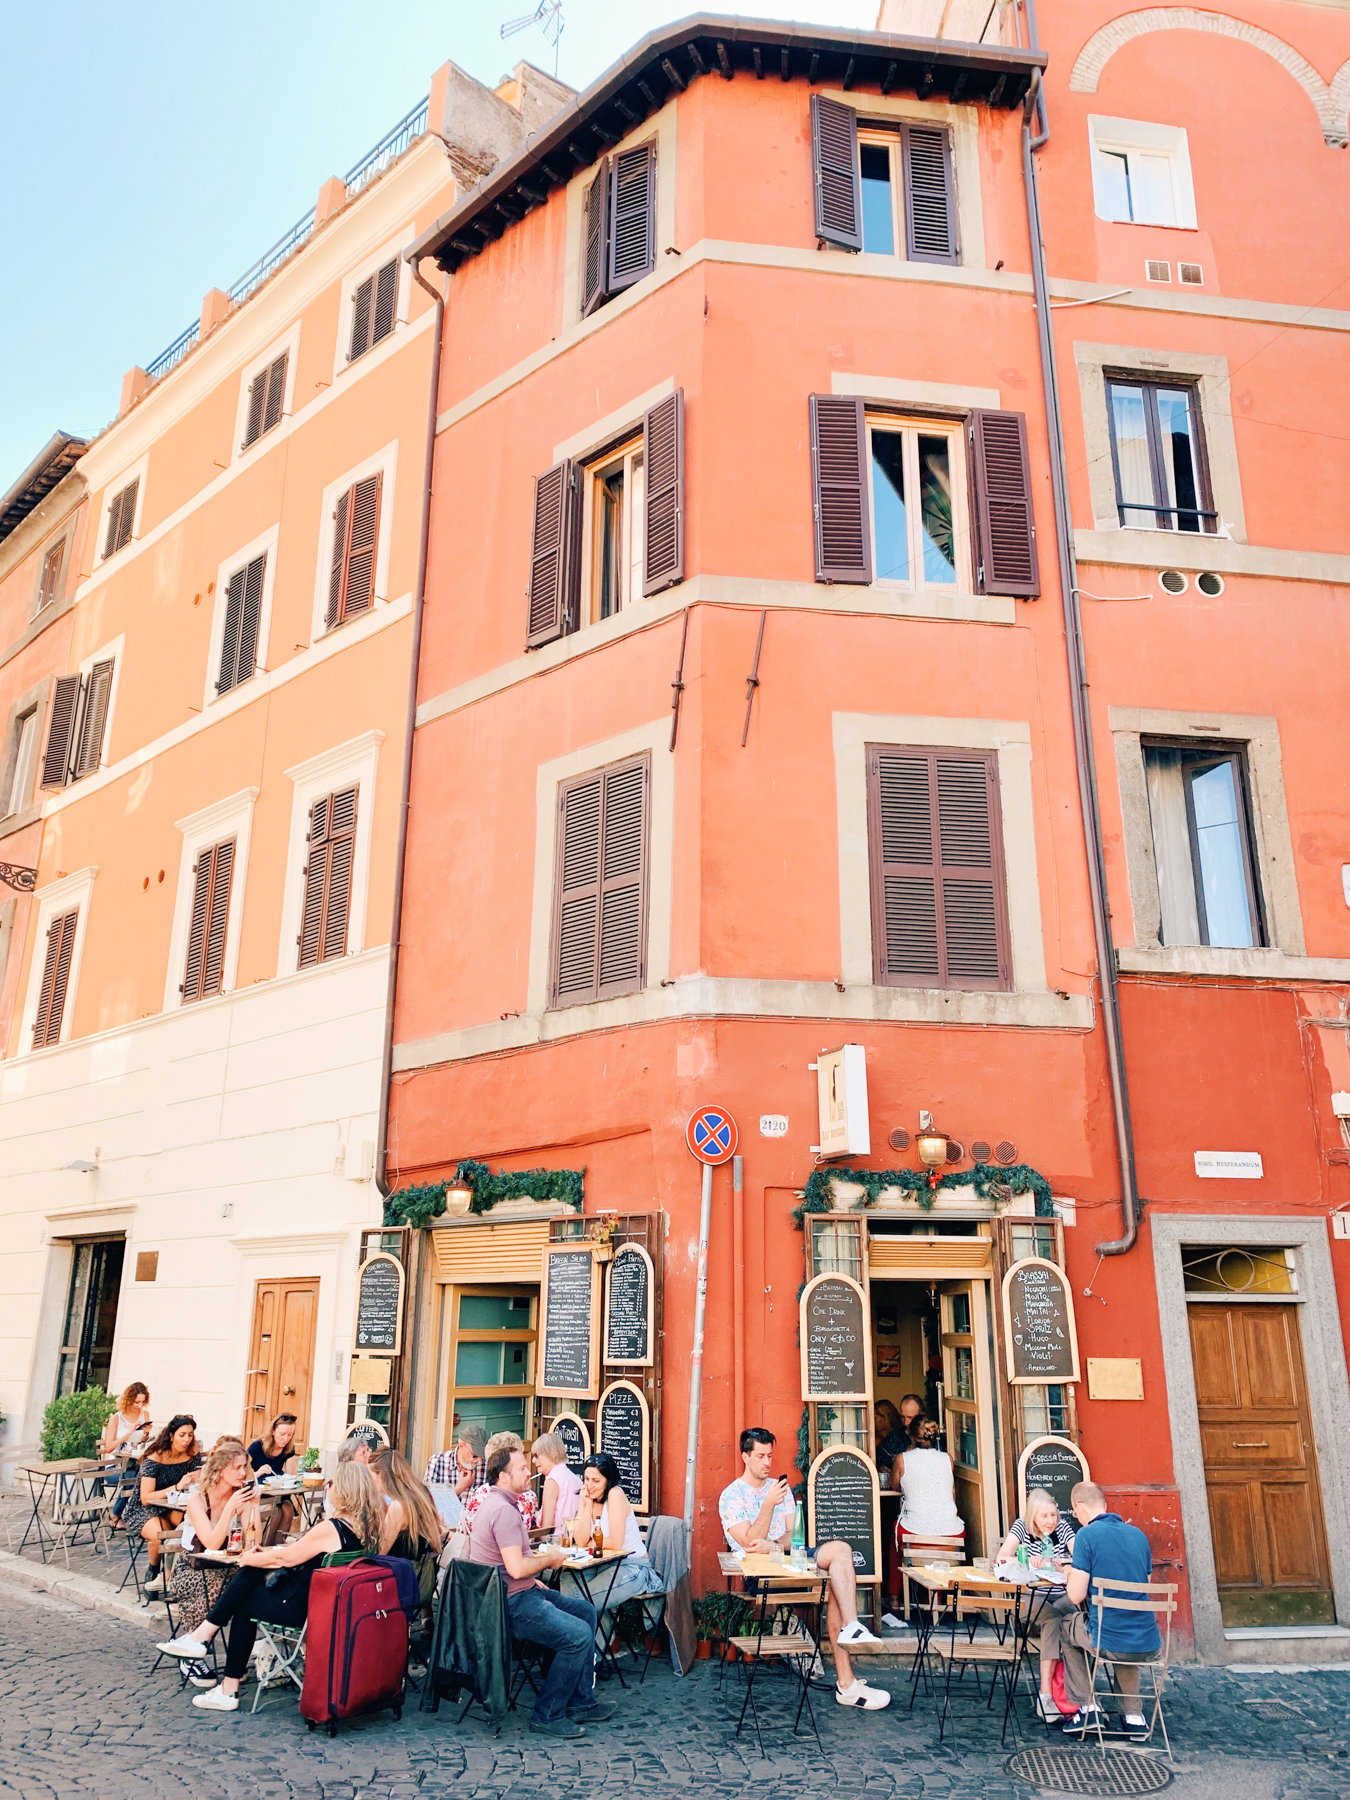 Dining alfresco is one of the most charming parts of Rome.